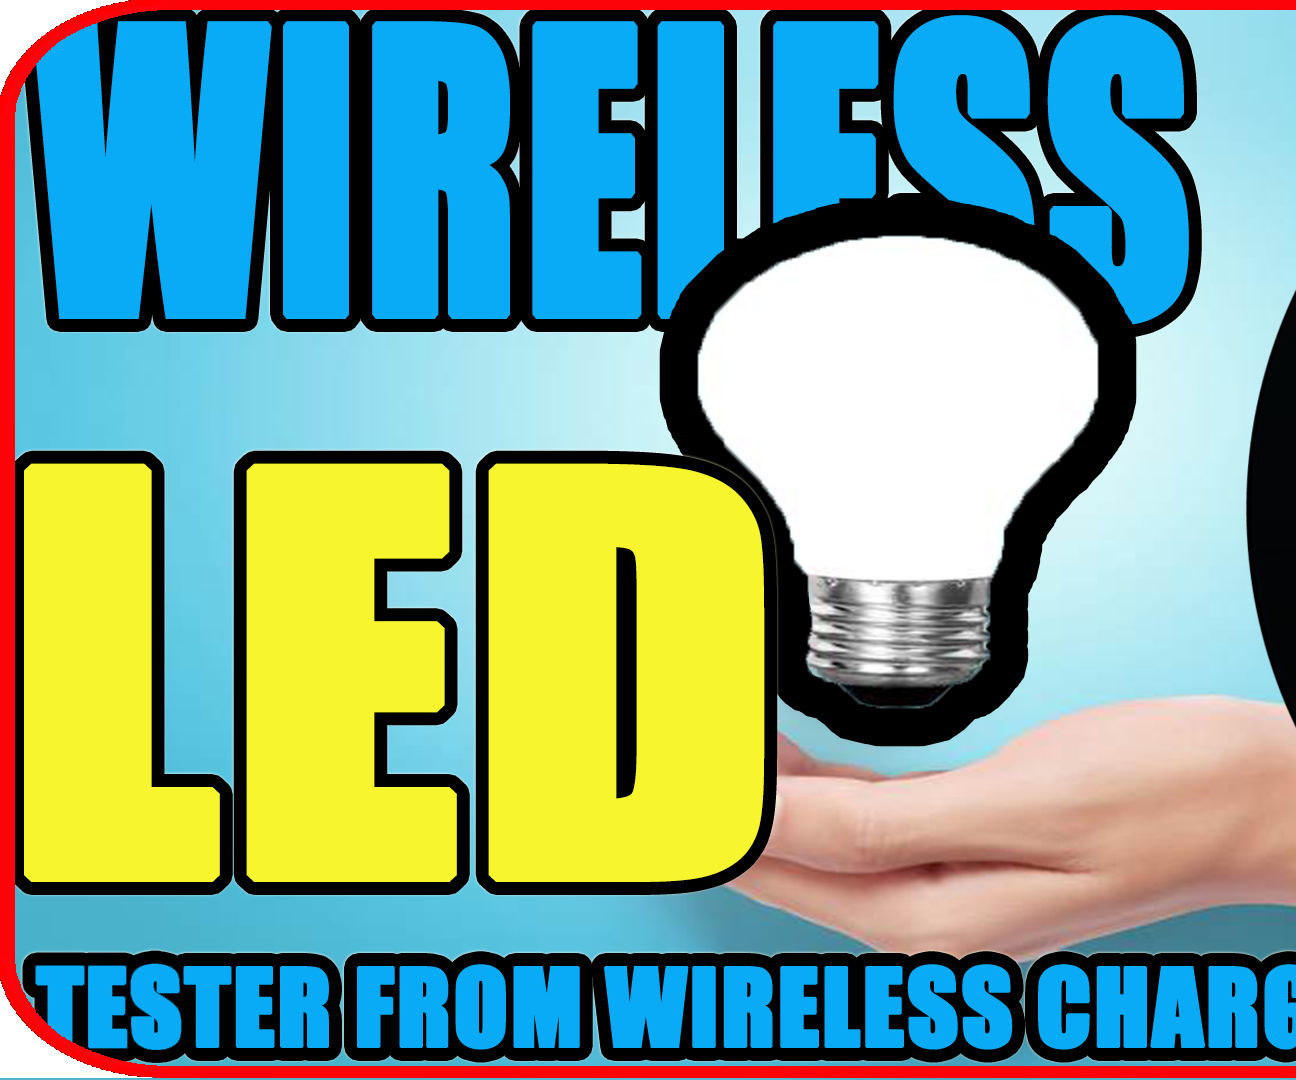 How to Make LED Tester Wireless